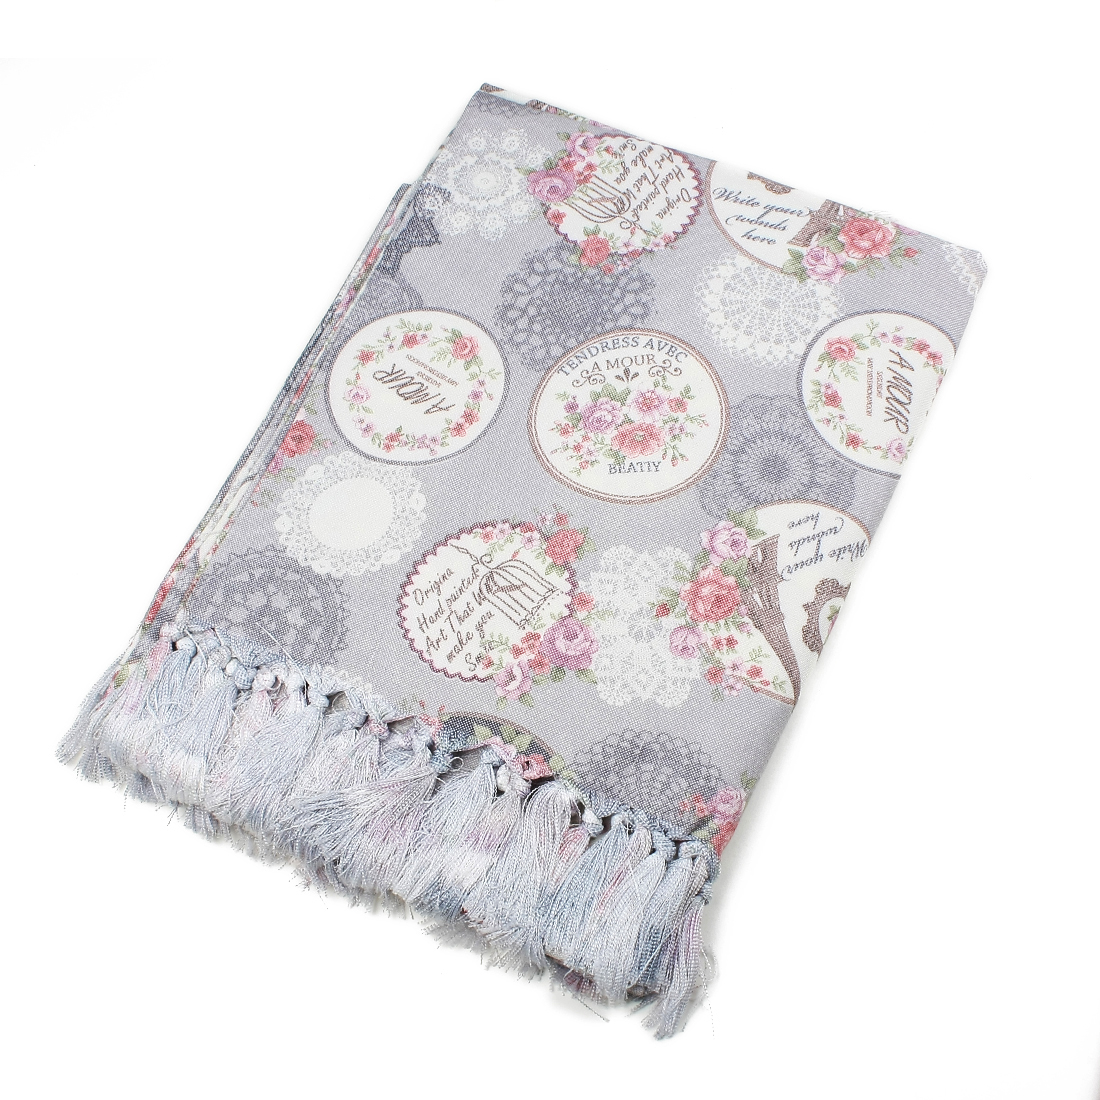 Household Floral Rectangle Tablecloth 135 x 220cm Light grey